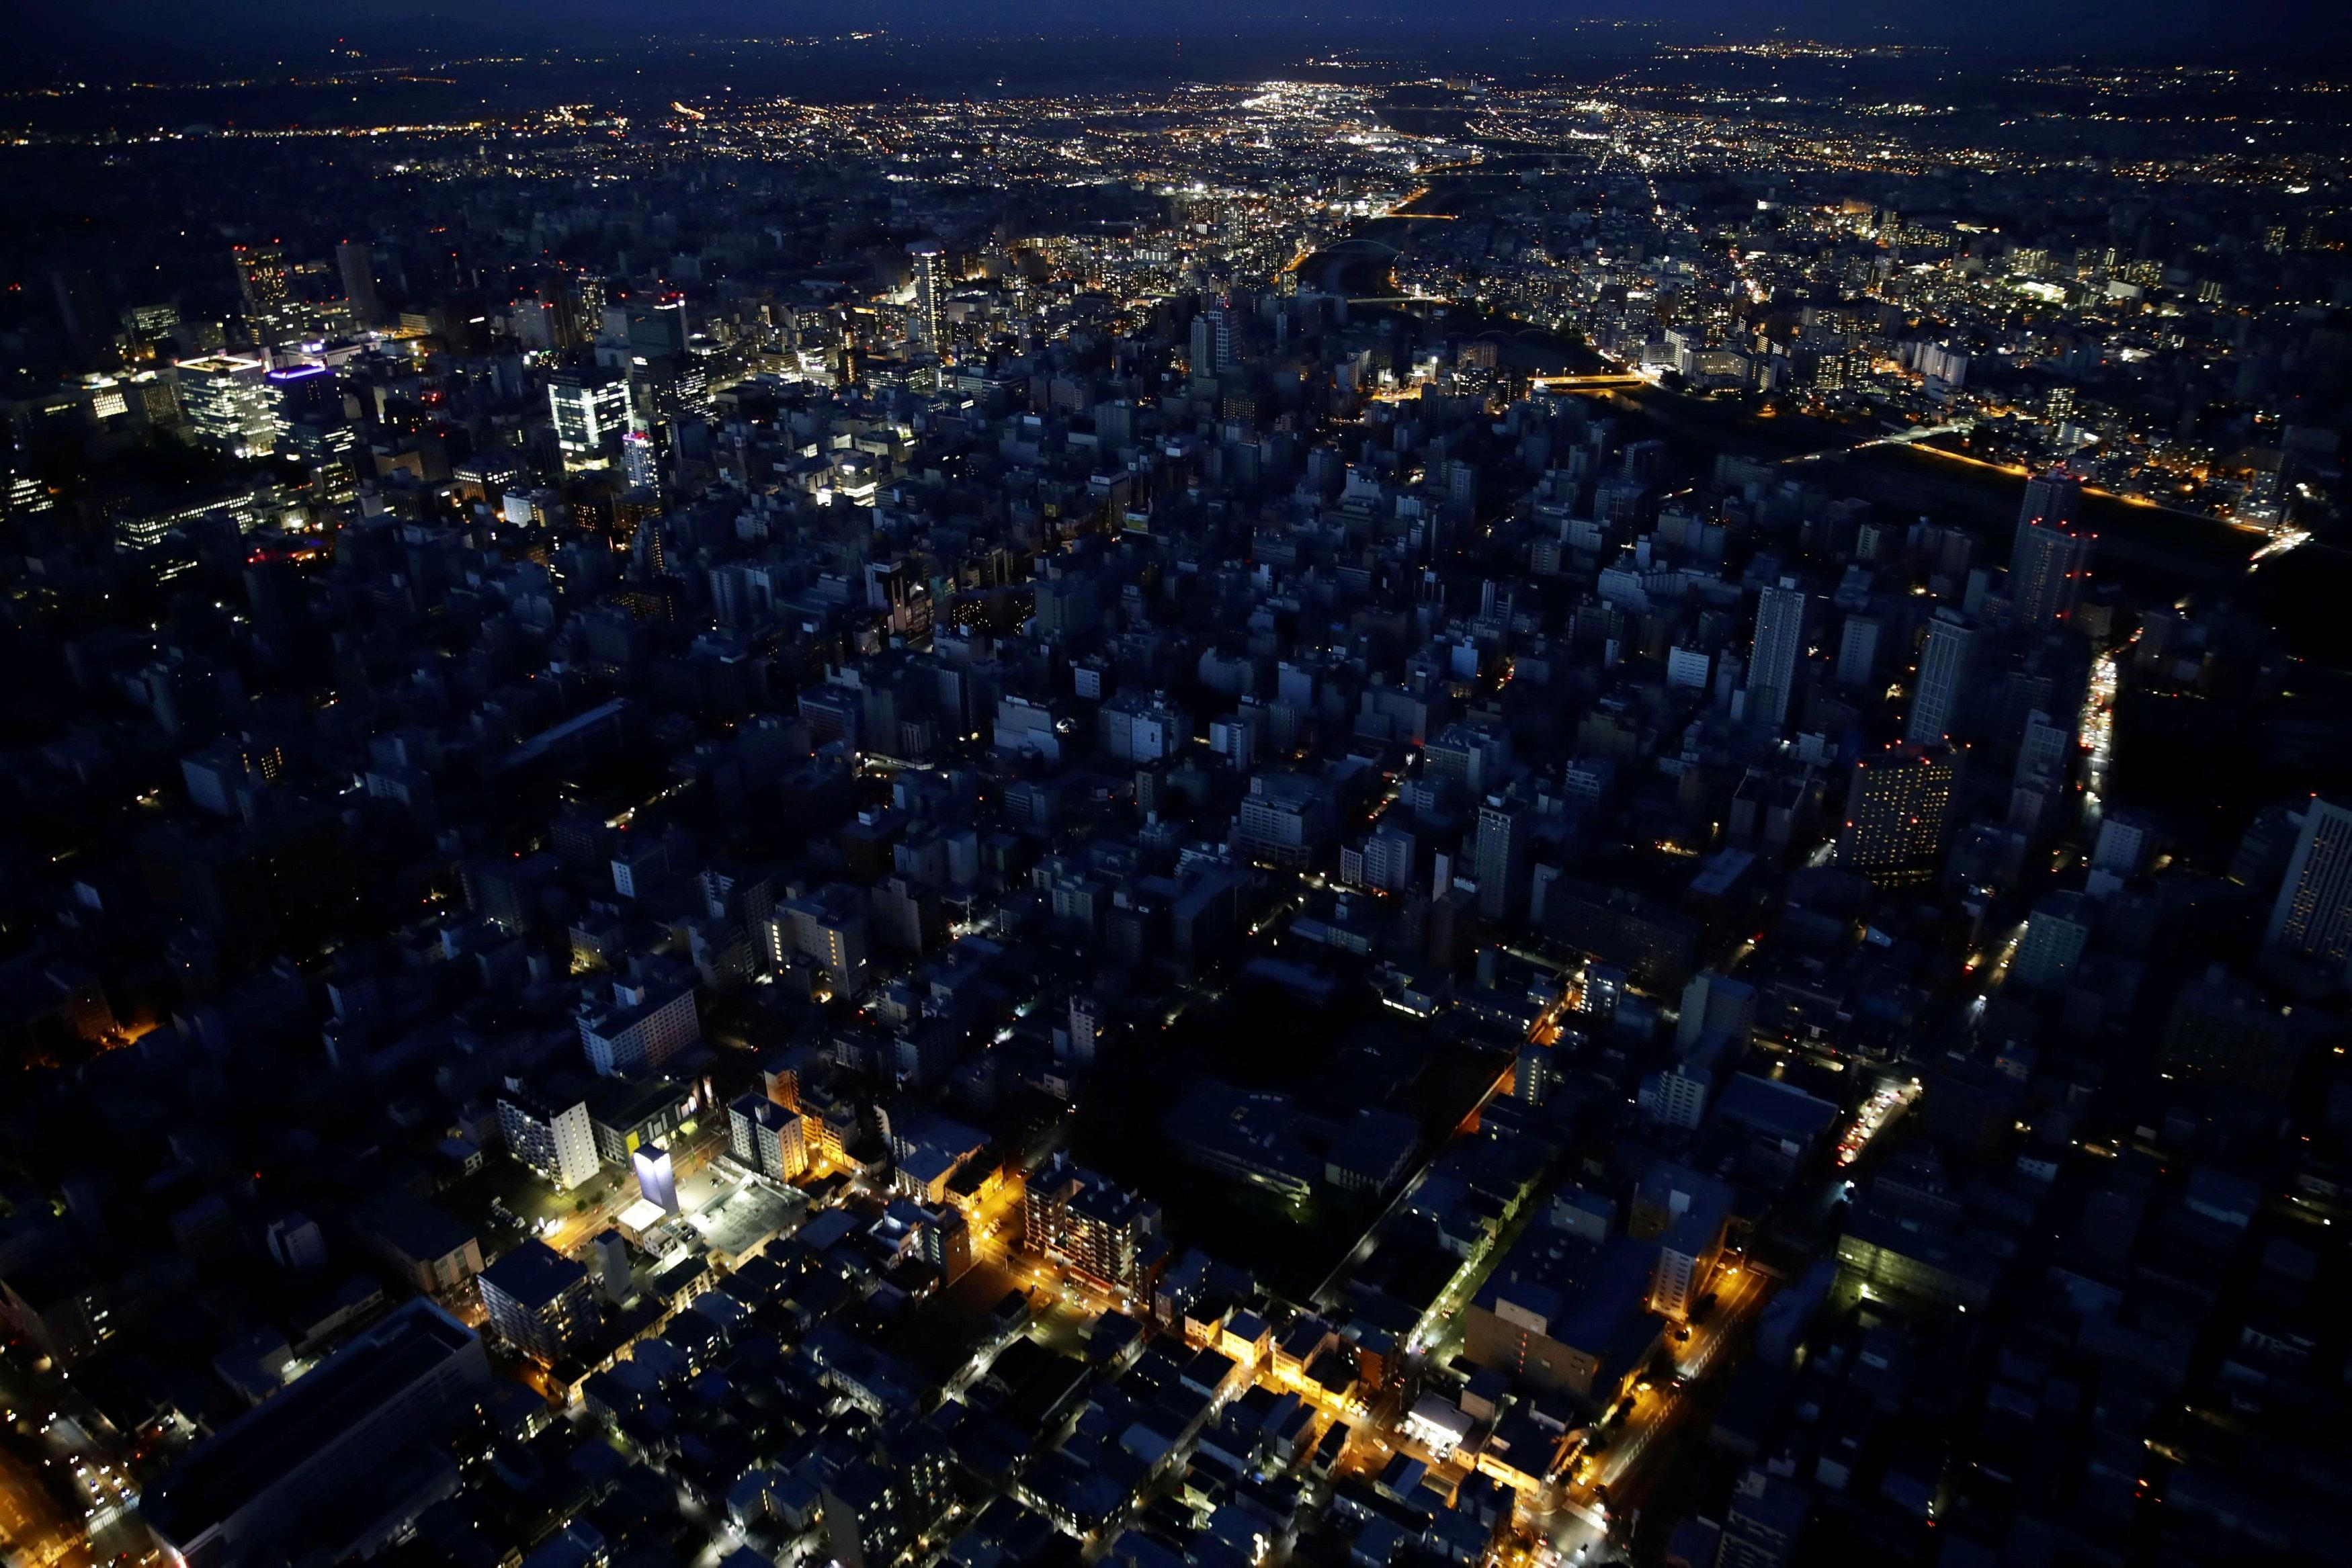 Japan suffers from around 480 tremors a year